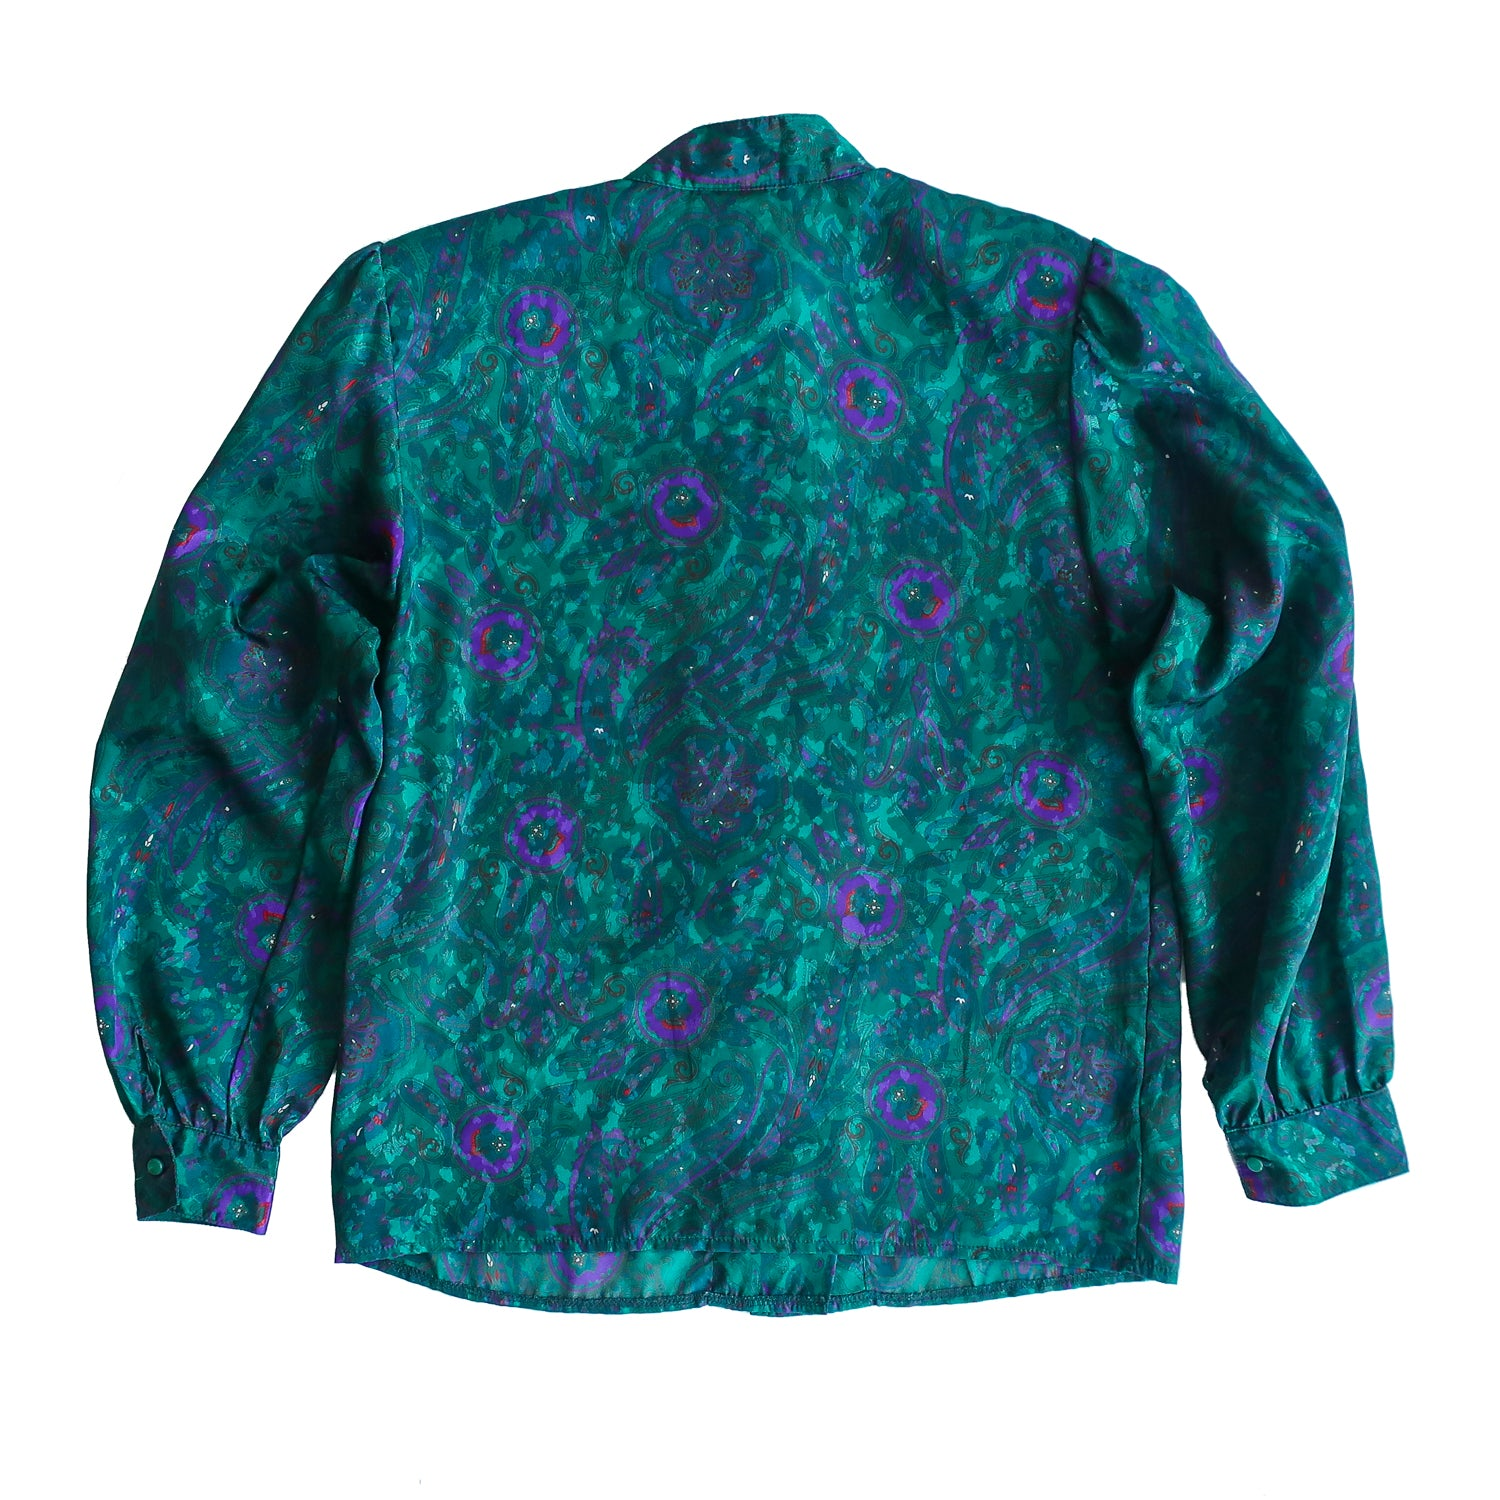 Second Room Shop Vintage. Shop vintage, shop sustainable. Vintage long sleeve blouse with a gorgeous paisley print, in emerald green, blue and purple. This blouse buttons down the front, with a double button style, and has a standing collar. The shoulders have a slightly gathered detail, with one button at each cuff, and there are shoulder pads that can be easily removed.